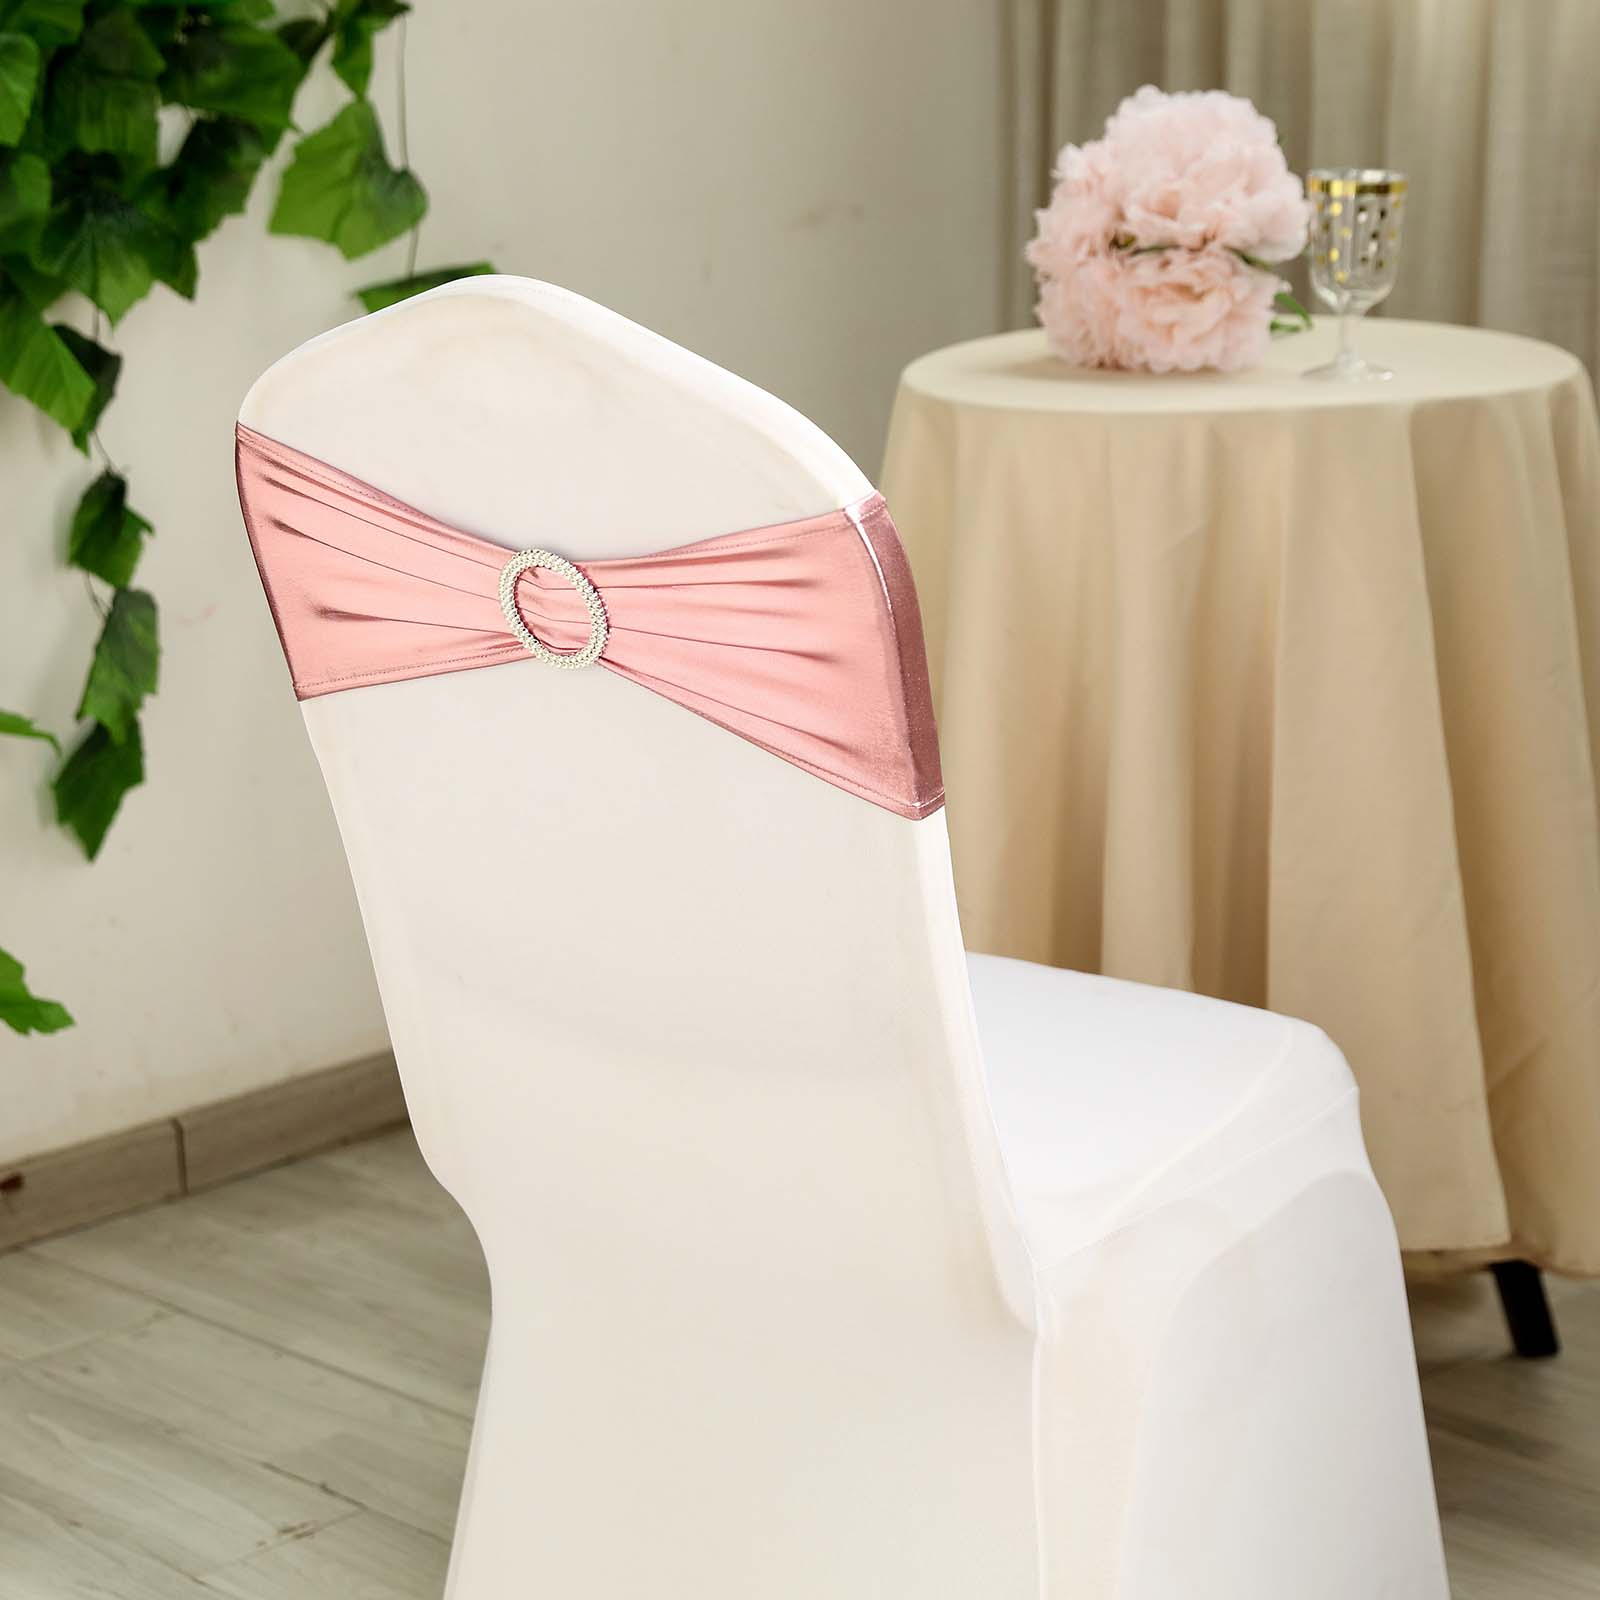 Astounding Details About 10 Rose Gold Metallic Spandex Chair Sashes Silver Buckles Wedding Decorations Alphanode Cool Chair Designs And Ideas Alphanodeonline